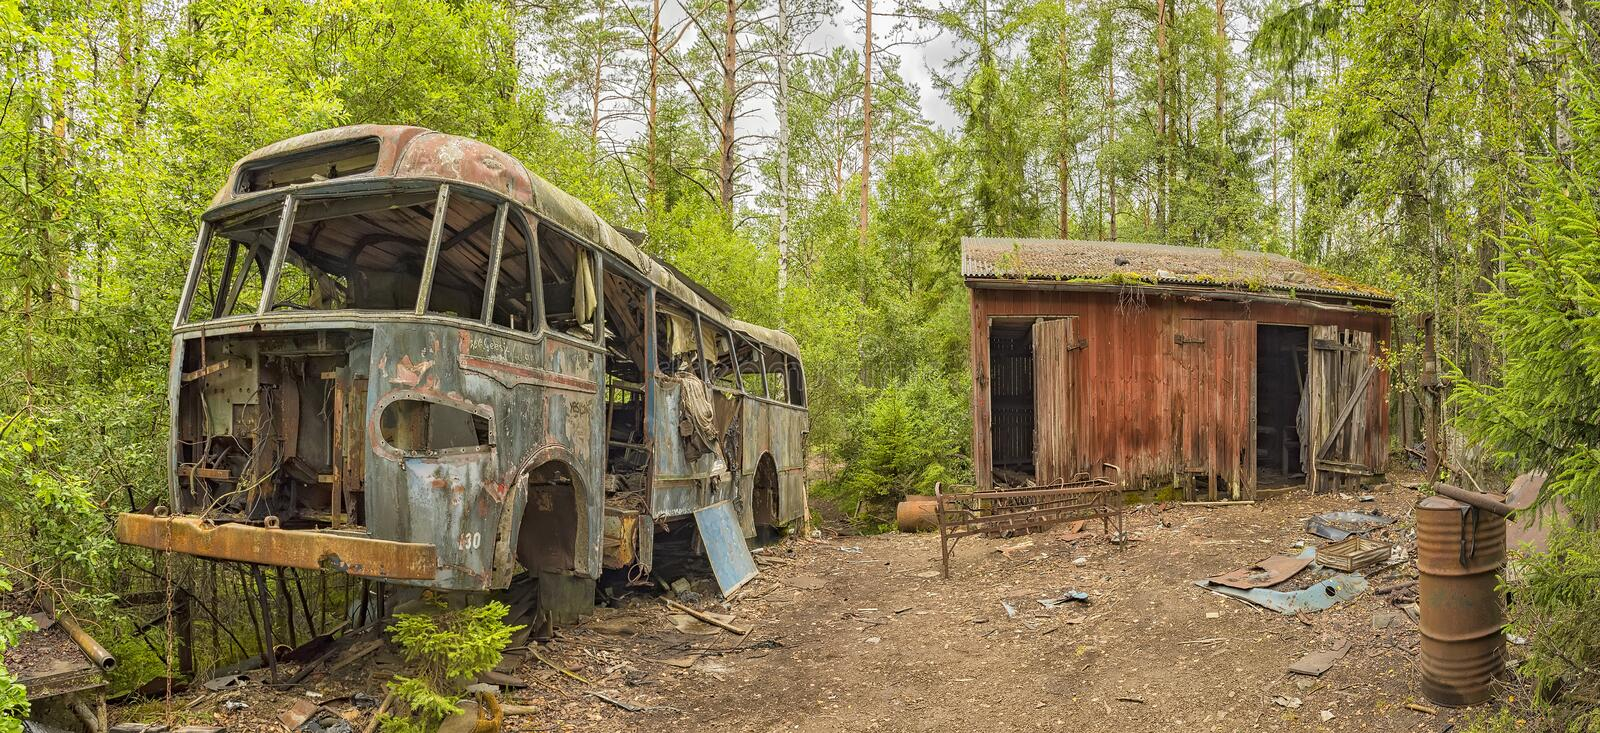 Wrecked Bus in Car Graveyard royalty free stock images